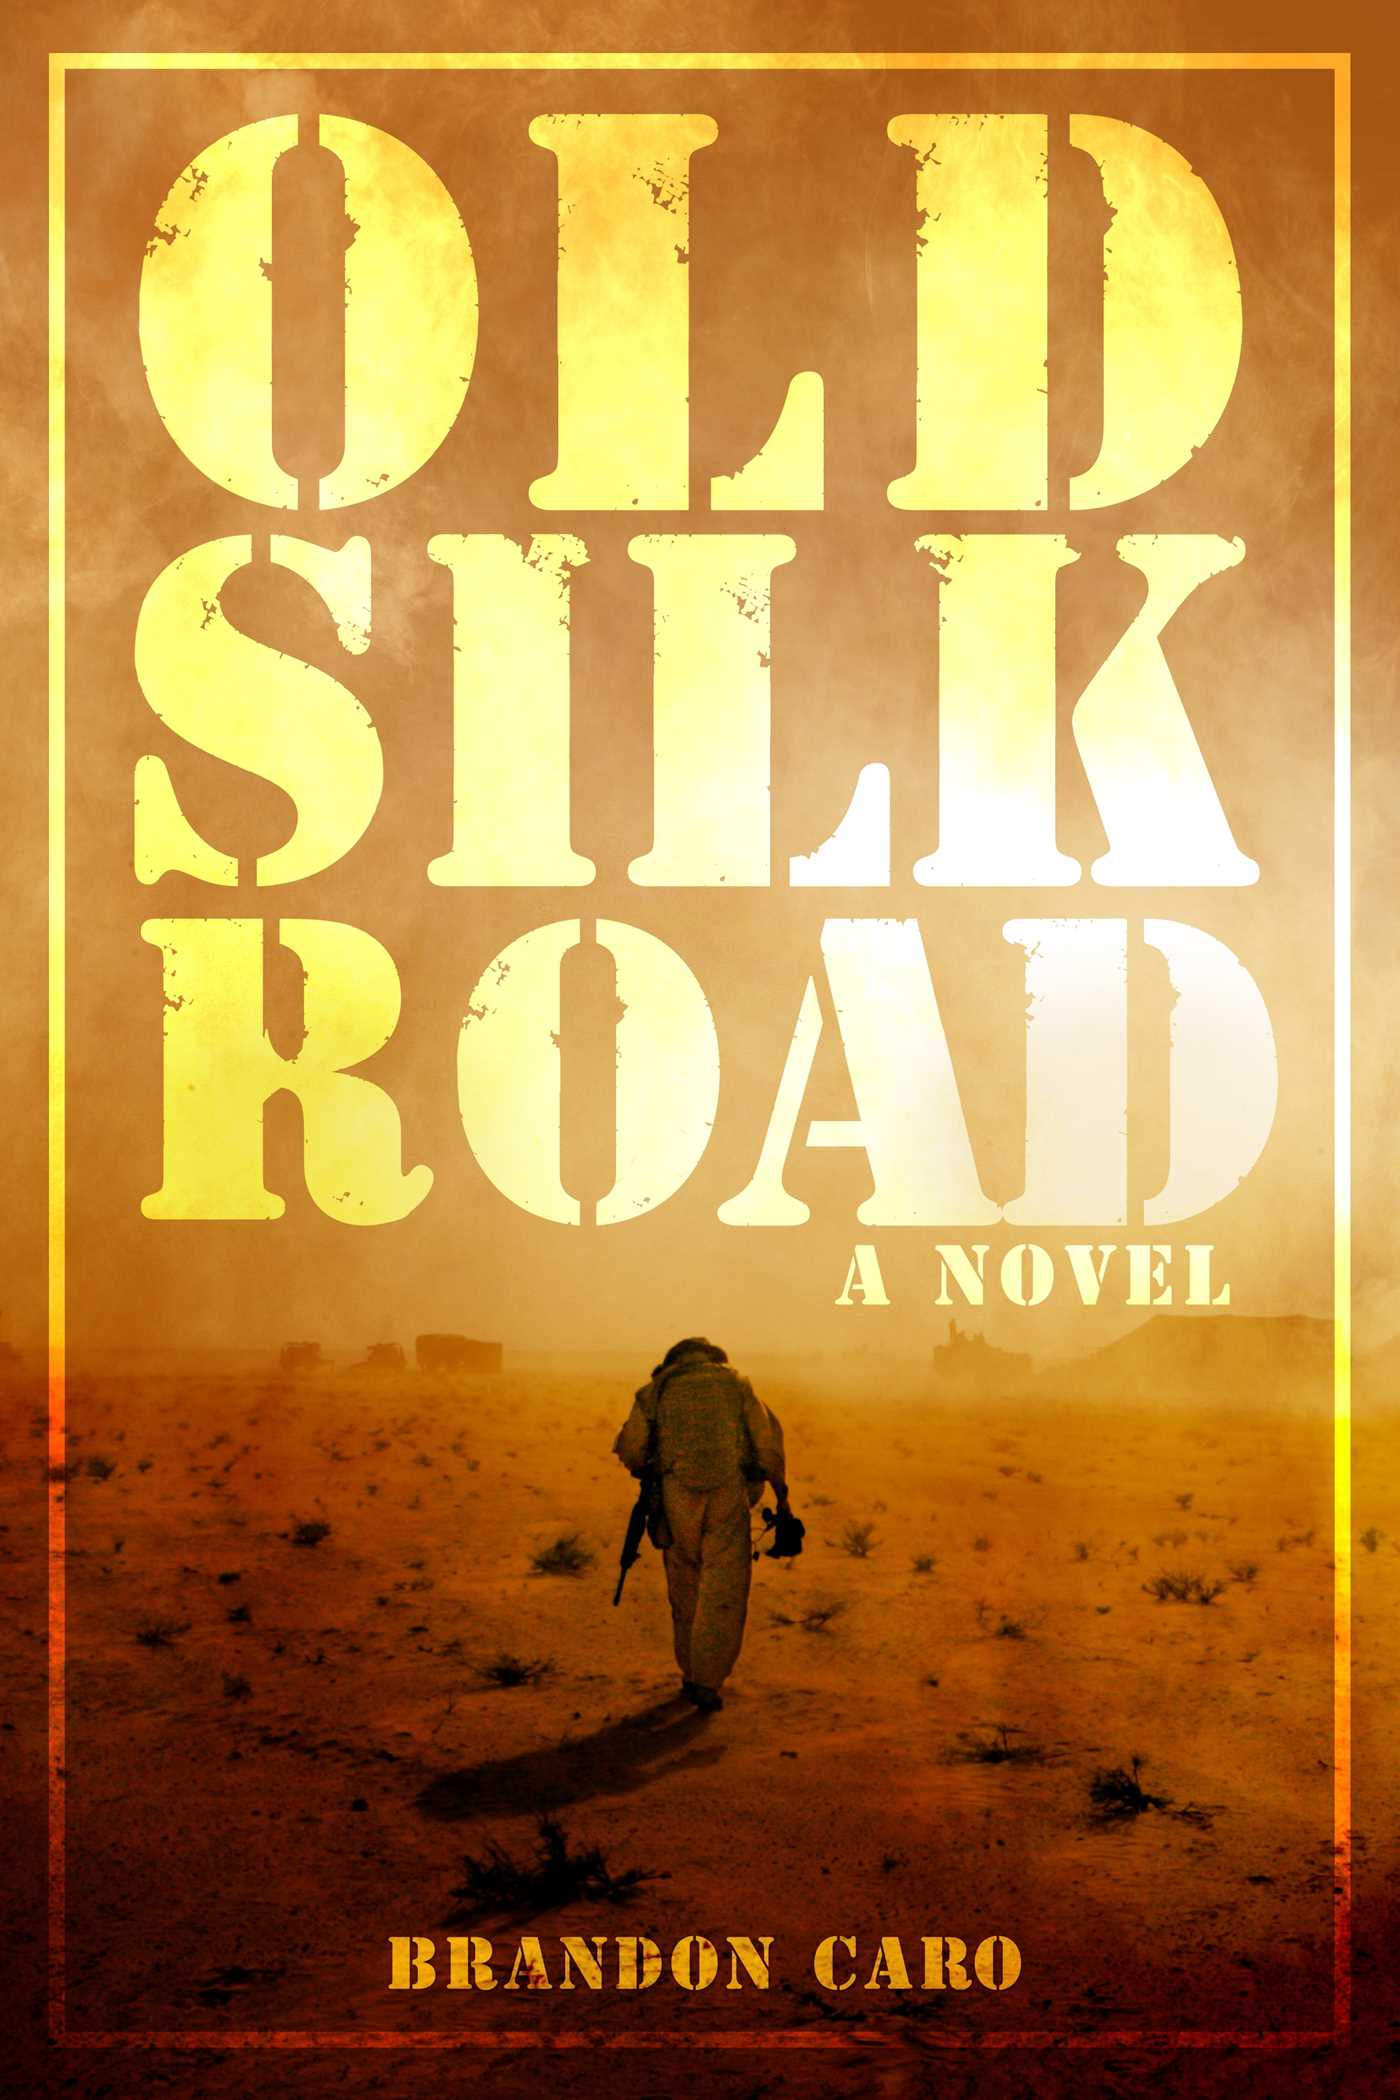 Old silk road 9781618688705 hr